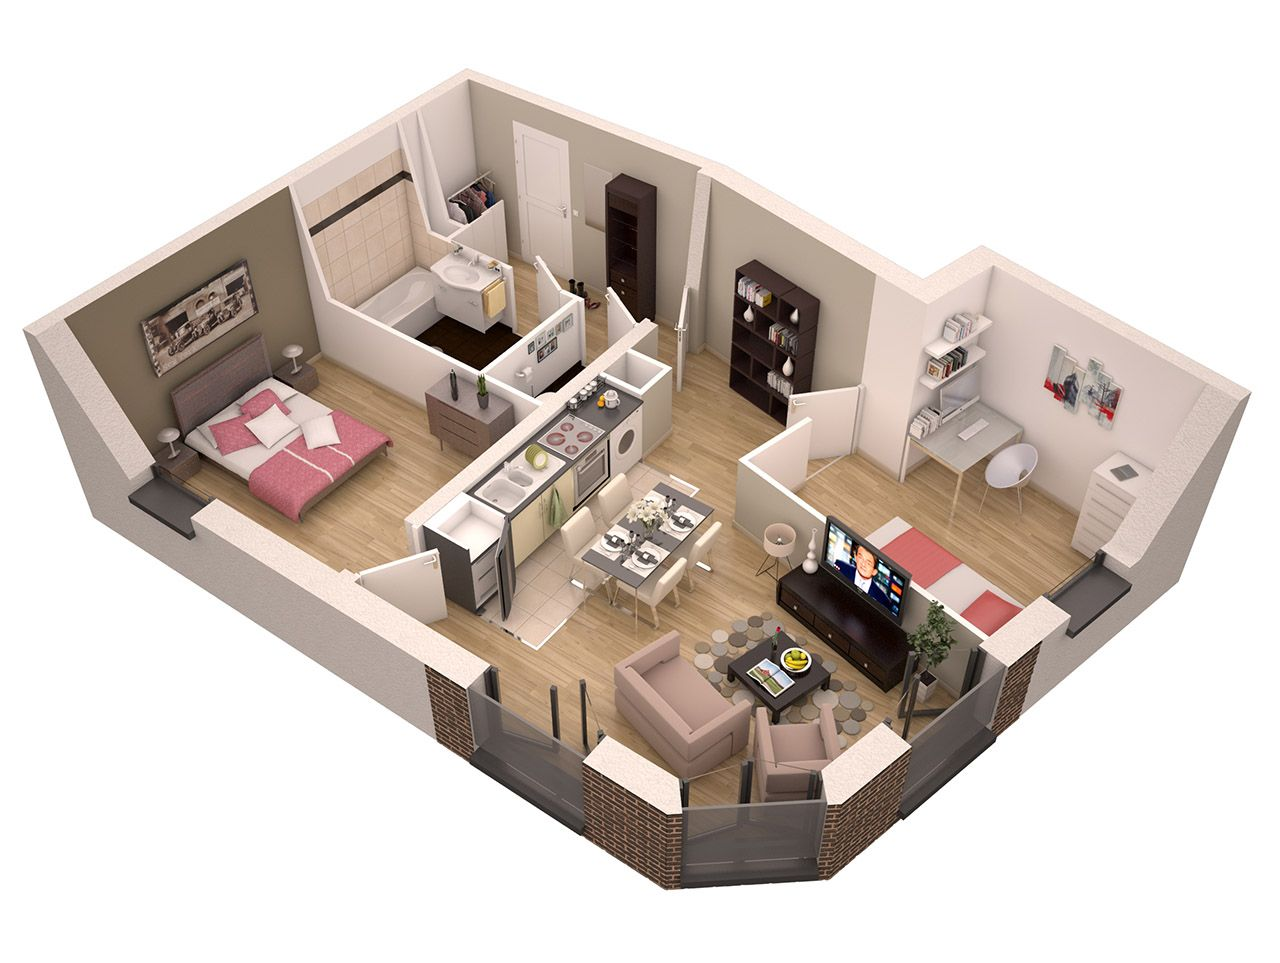 plan d'appartement 3d